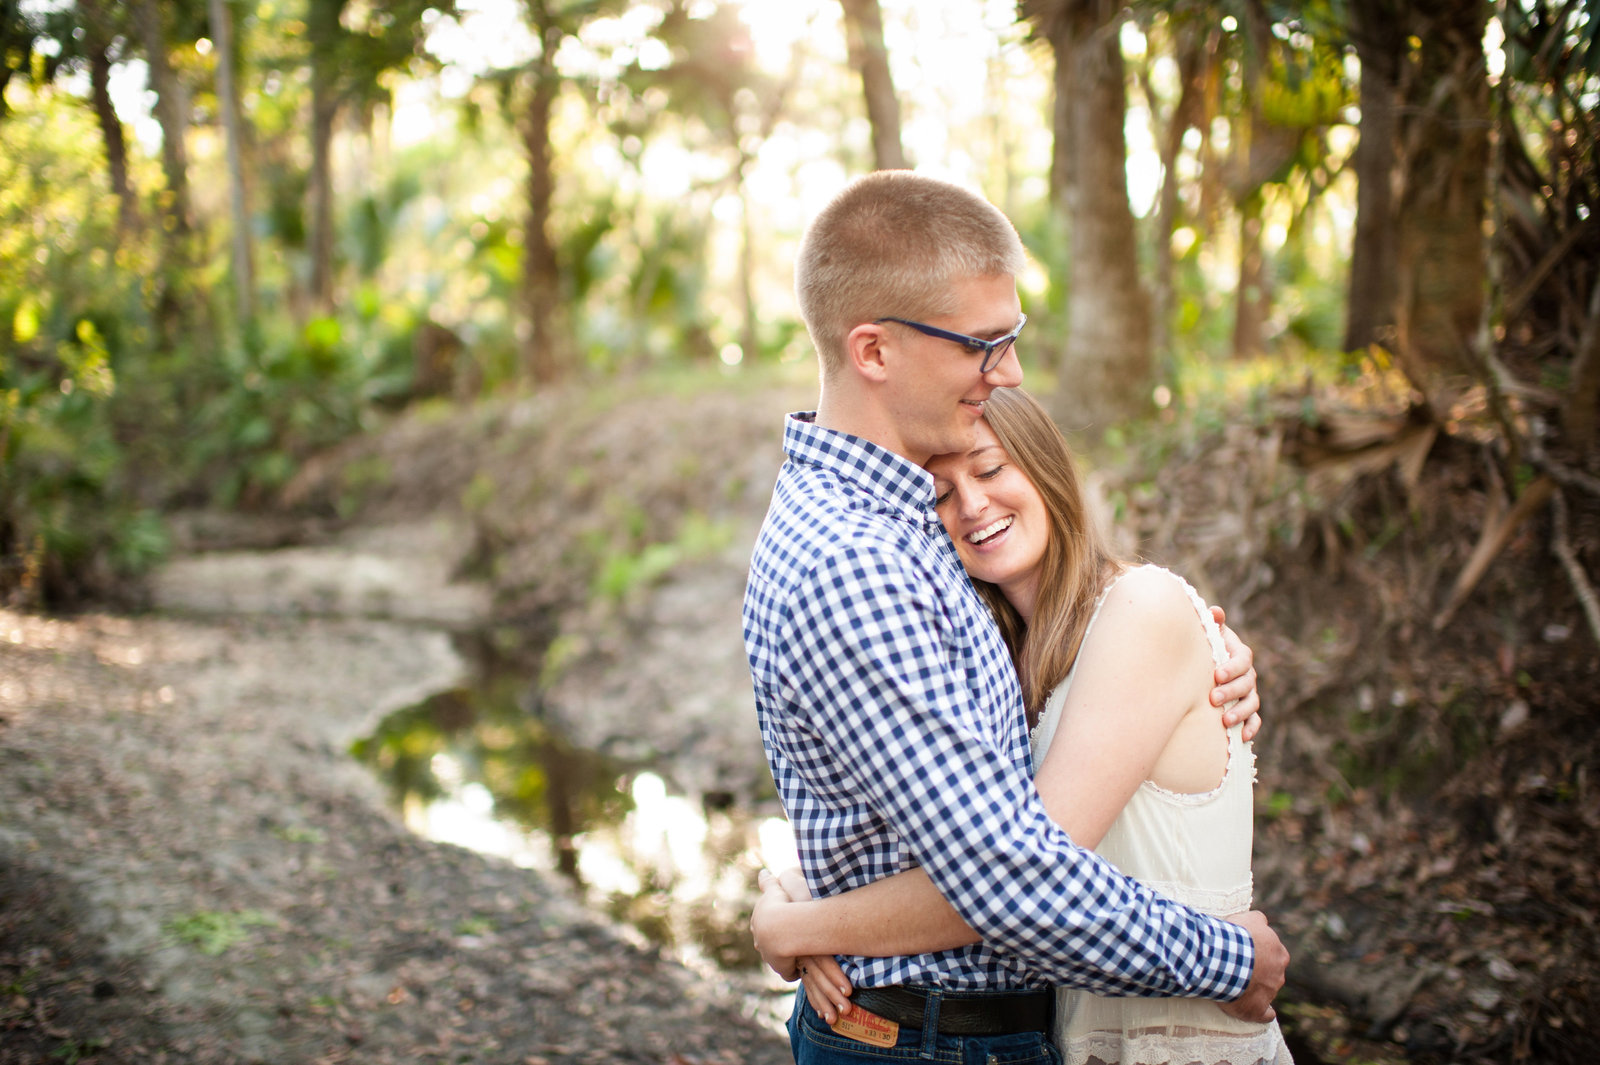 New Smyrna Beach engagement photography (4)